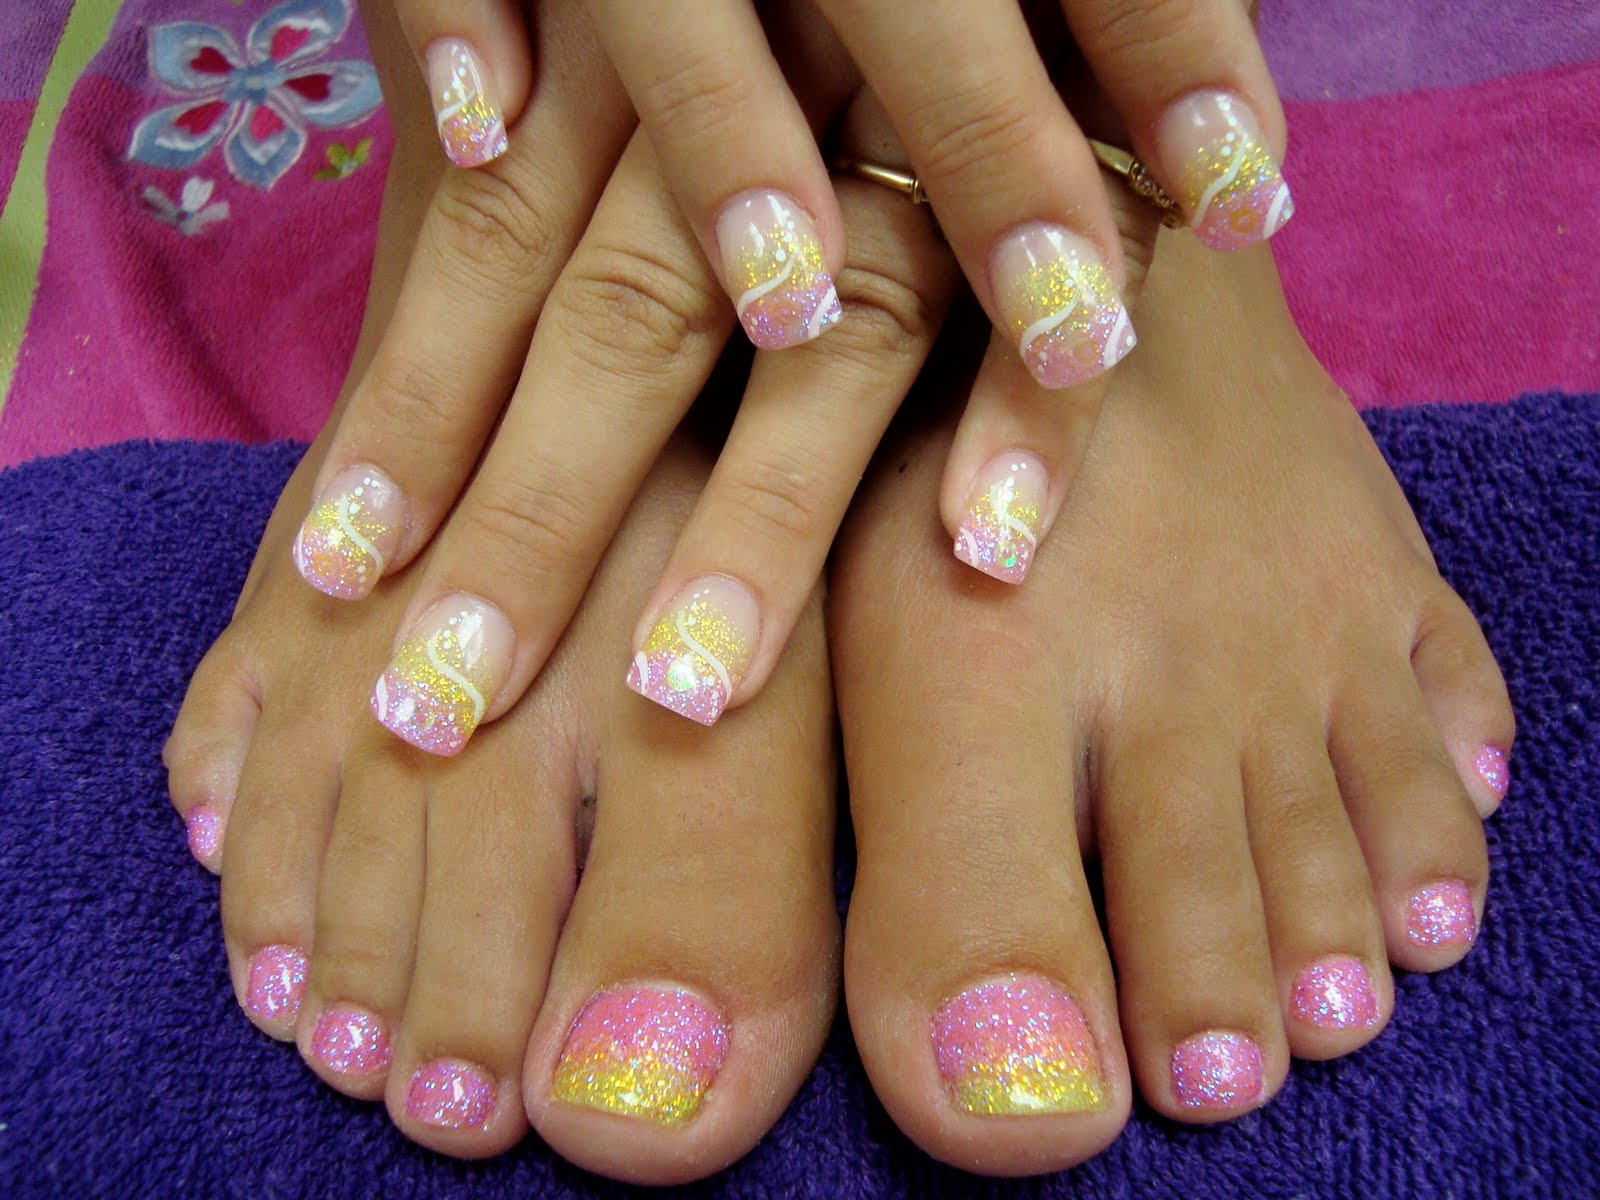 Glitter Toes Colors With Matching Glitter Toes